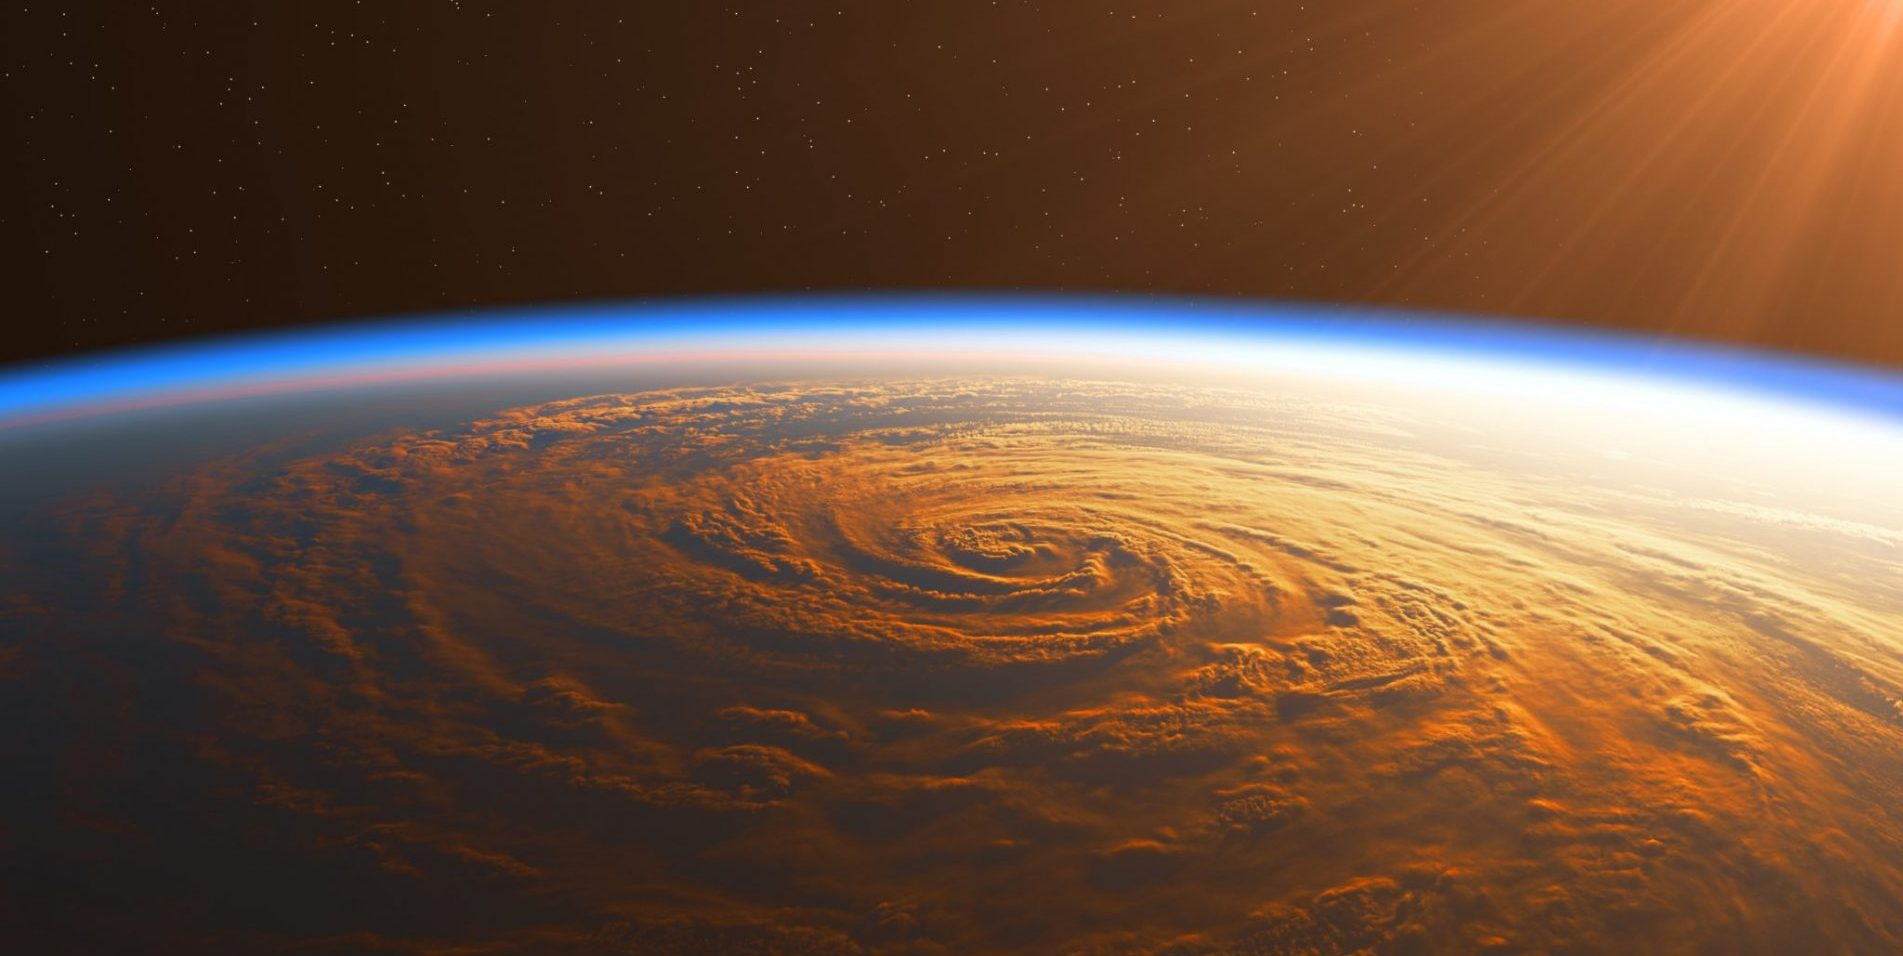 Hurricane as seen from space lit by the Sun